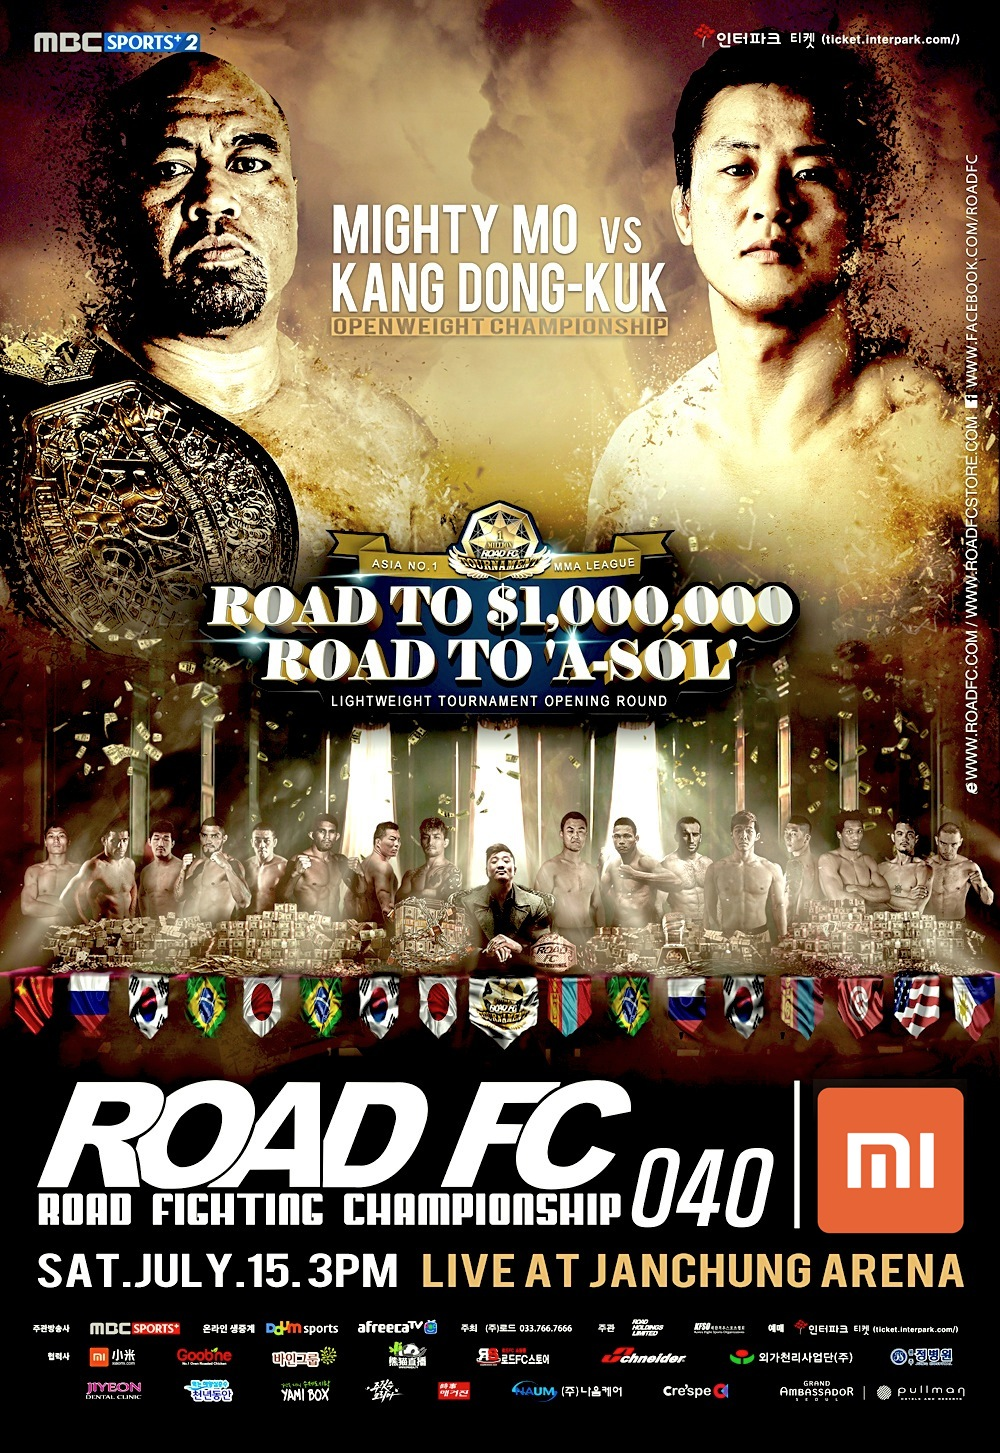 Xiaomi Road FC 040 Announcement Full Card Open, Event Broadcast, Tickets And Poster Released -